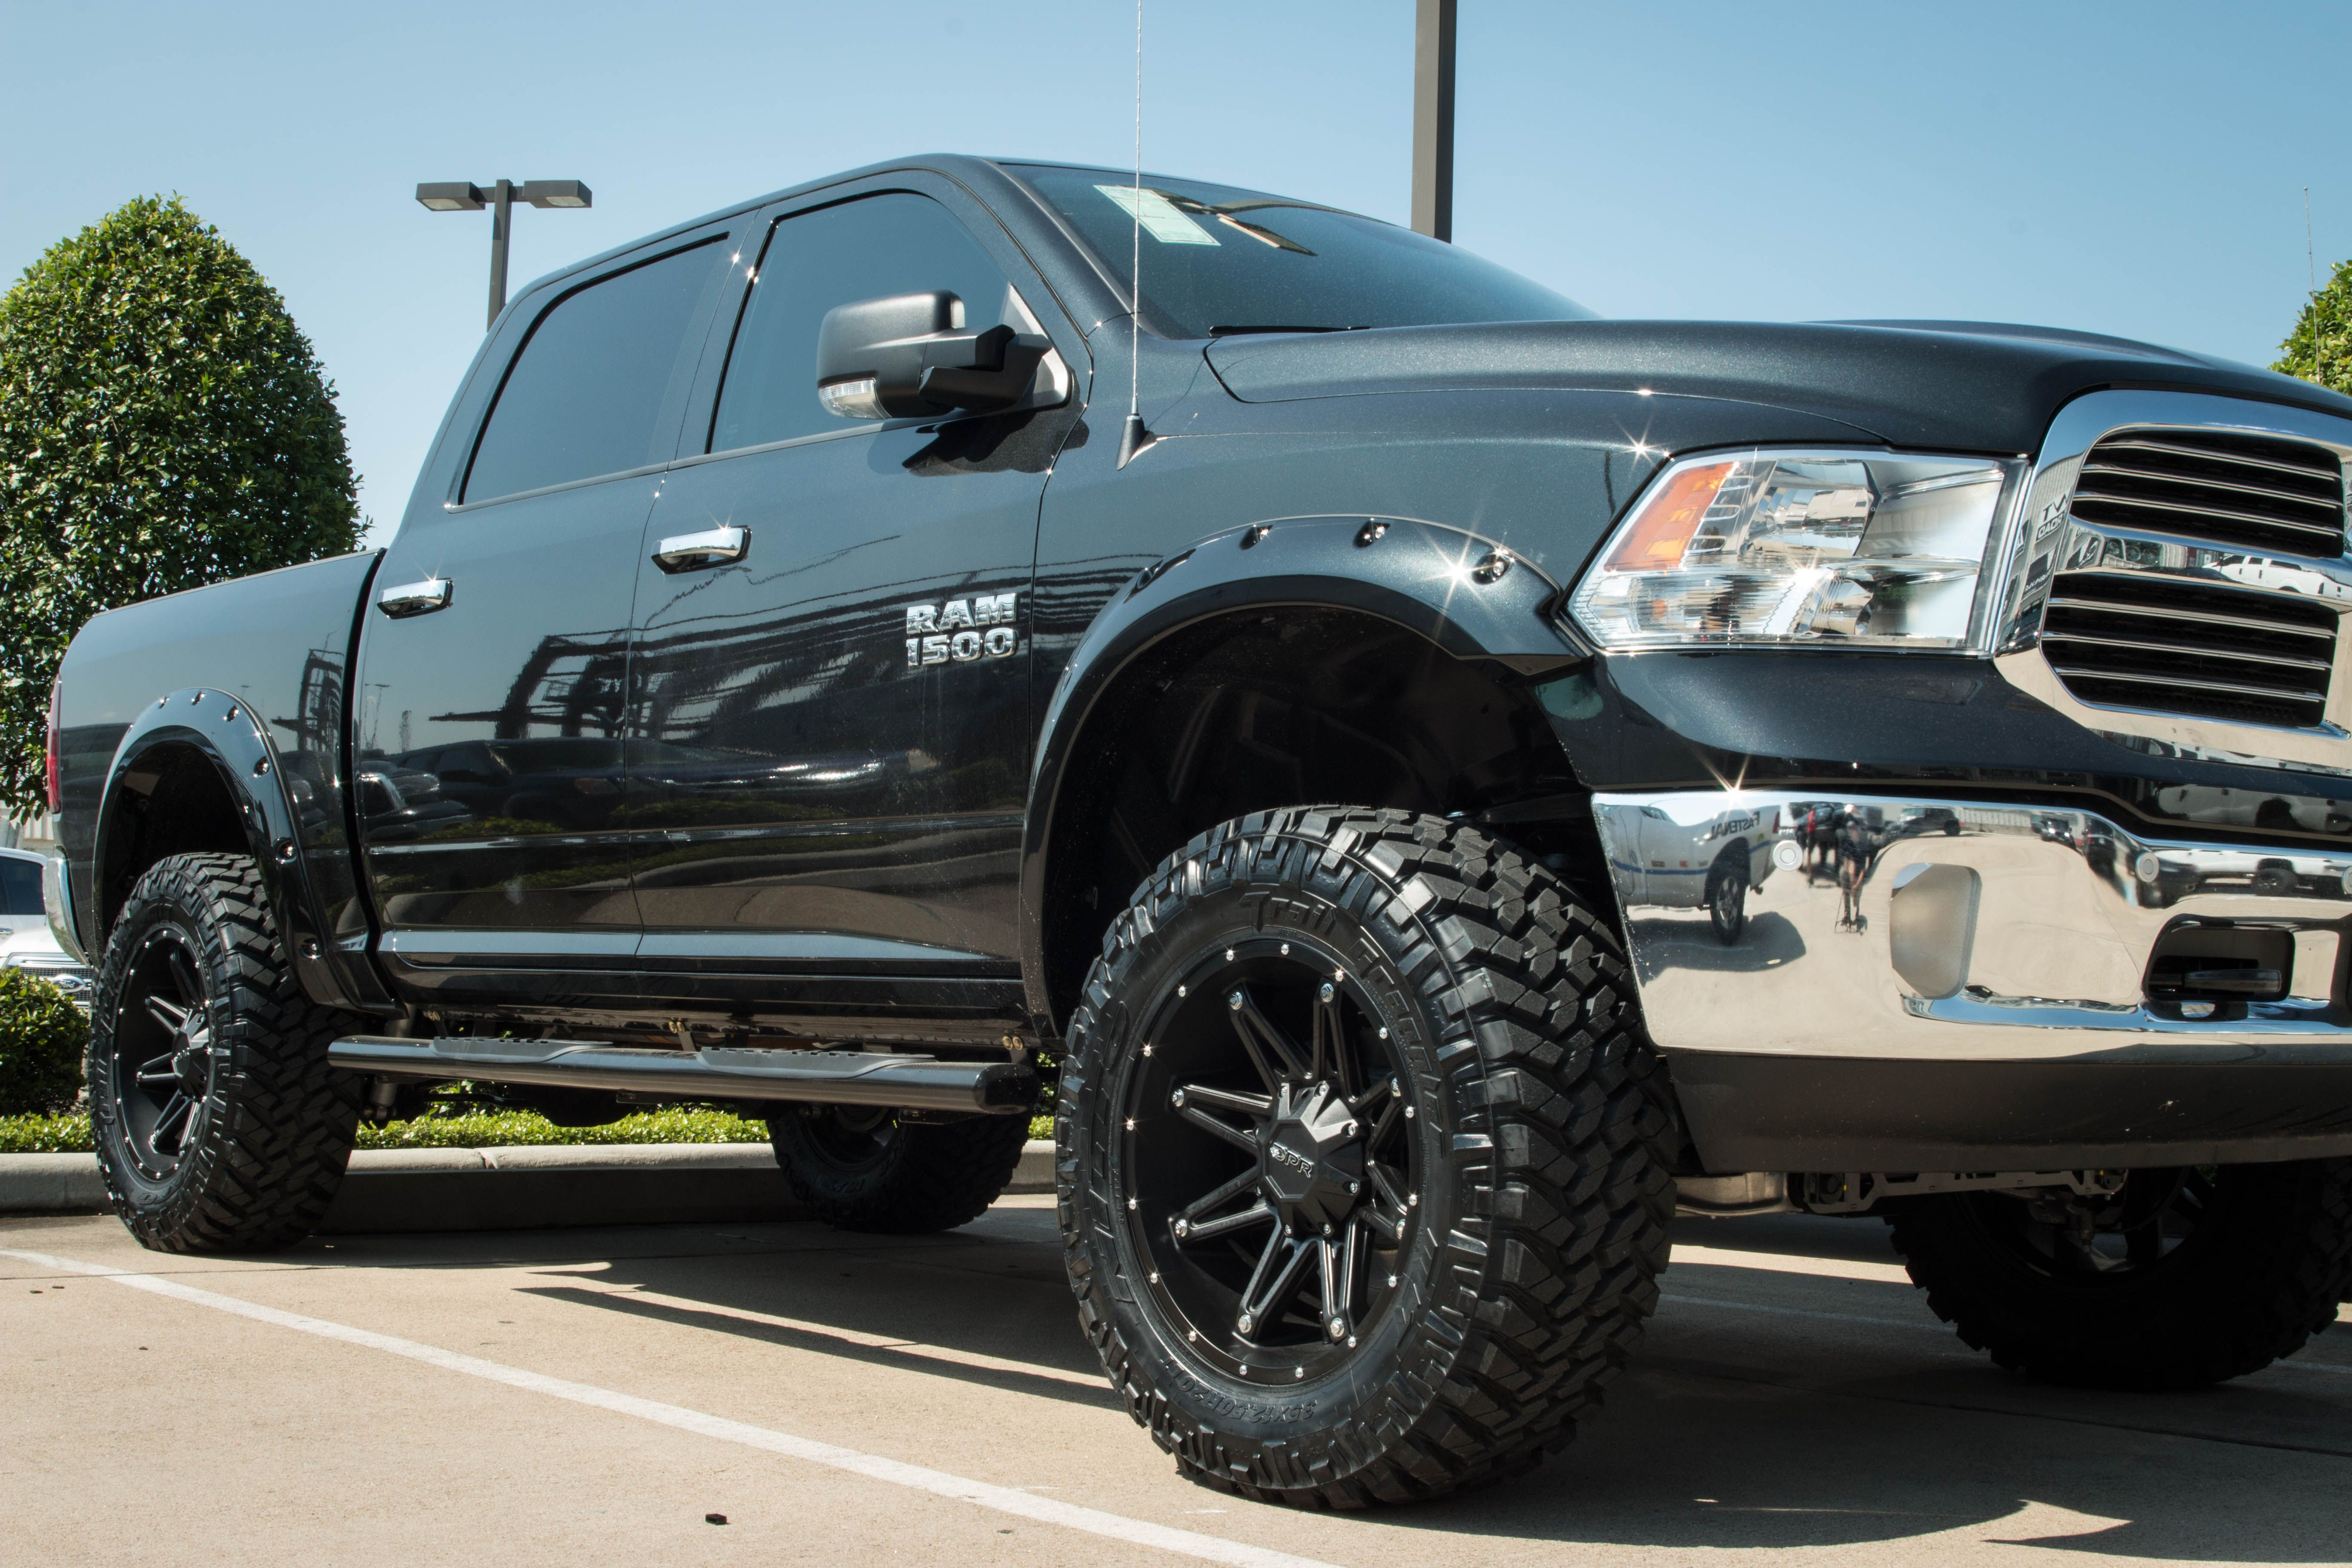 Dodge Ram 1500 Wheels And Tires Packages >> Pin By American Wheel And Tire On Awt Off Road Trucks